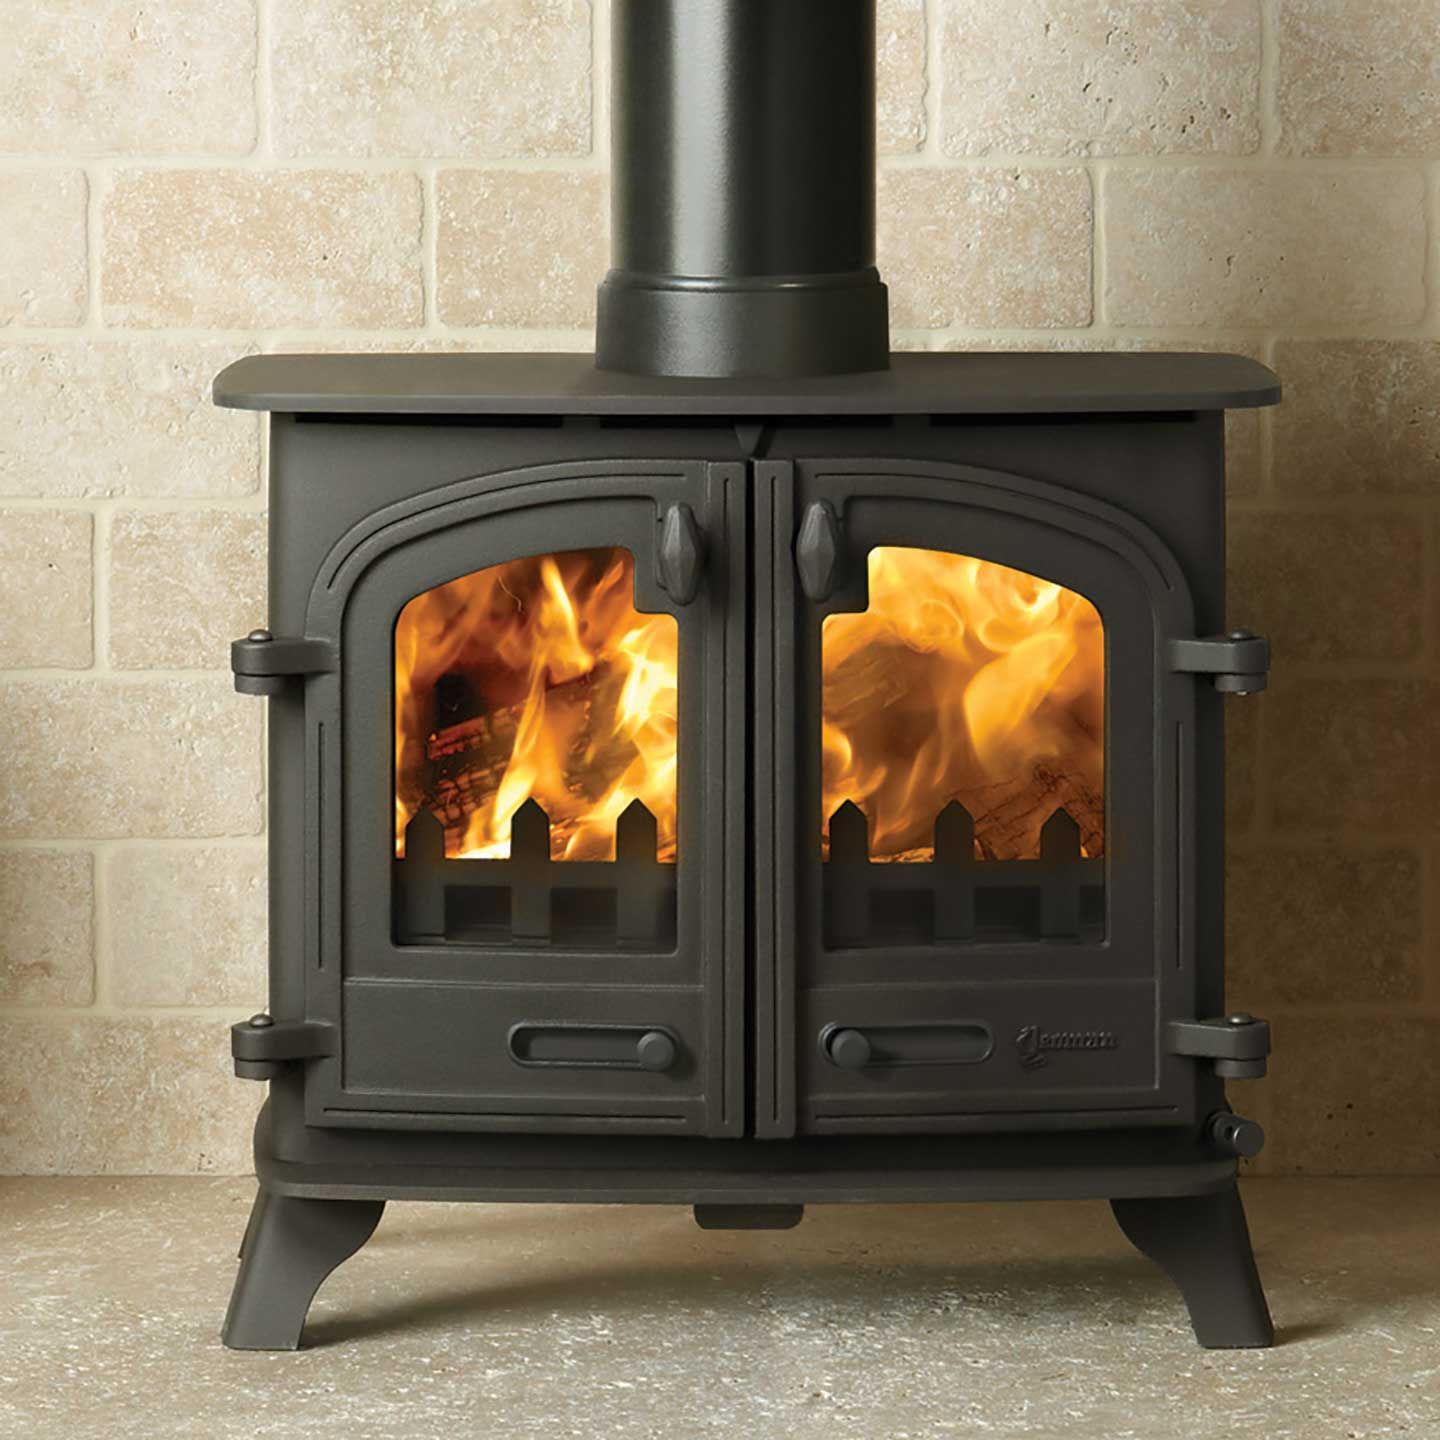 Yeoman Exe Multi Fuel 4 9kw Stove Approved Dealer